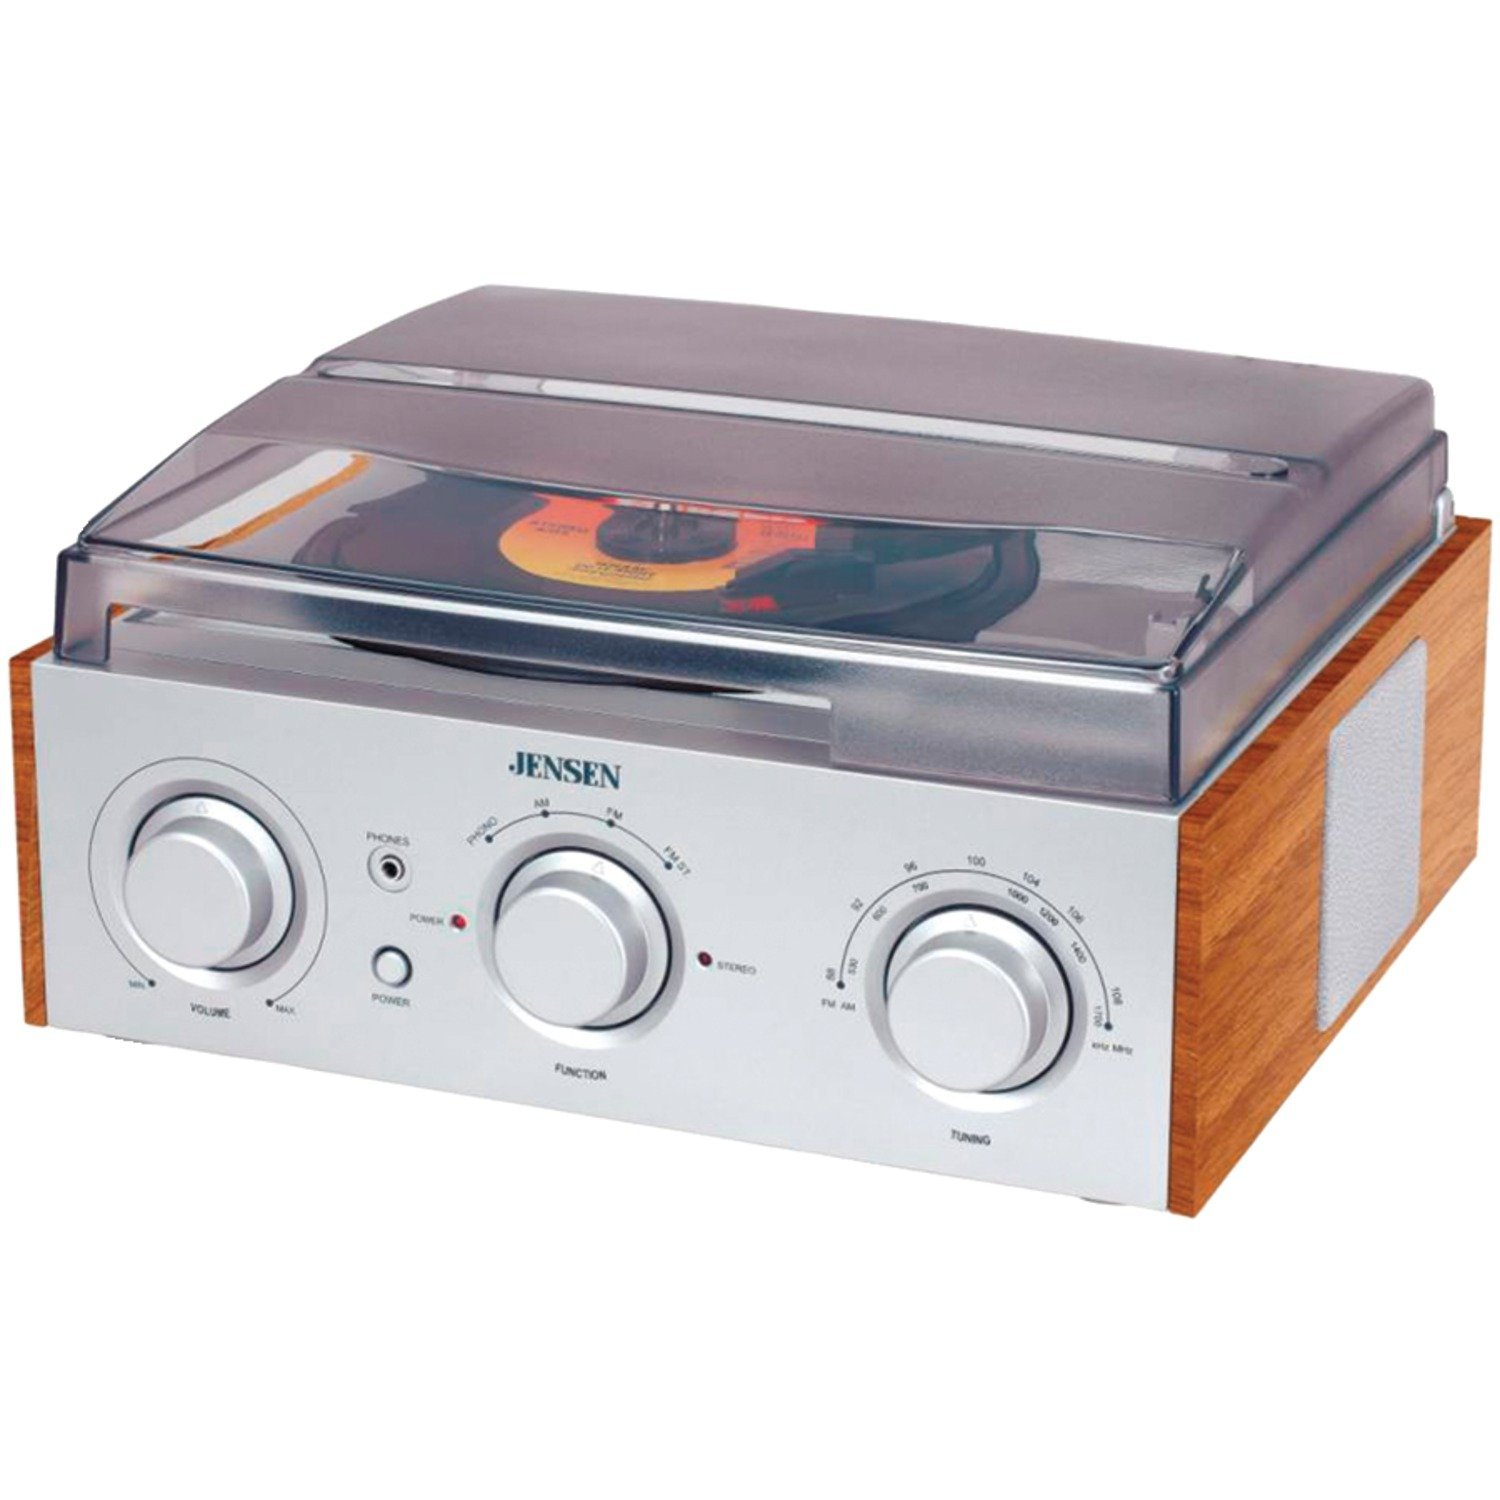 3-Speed Stereo Turntable with AM FM Stereo Radio (Silver), with Silver Turntable 3Speed... by Jensen